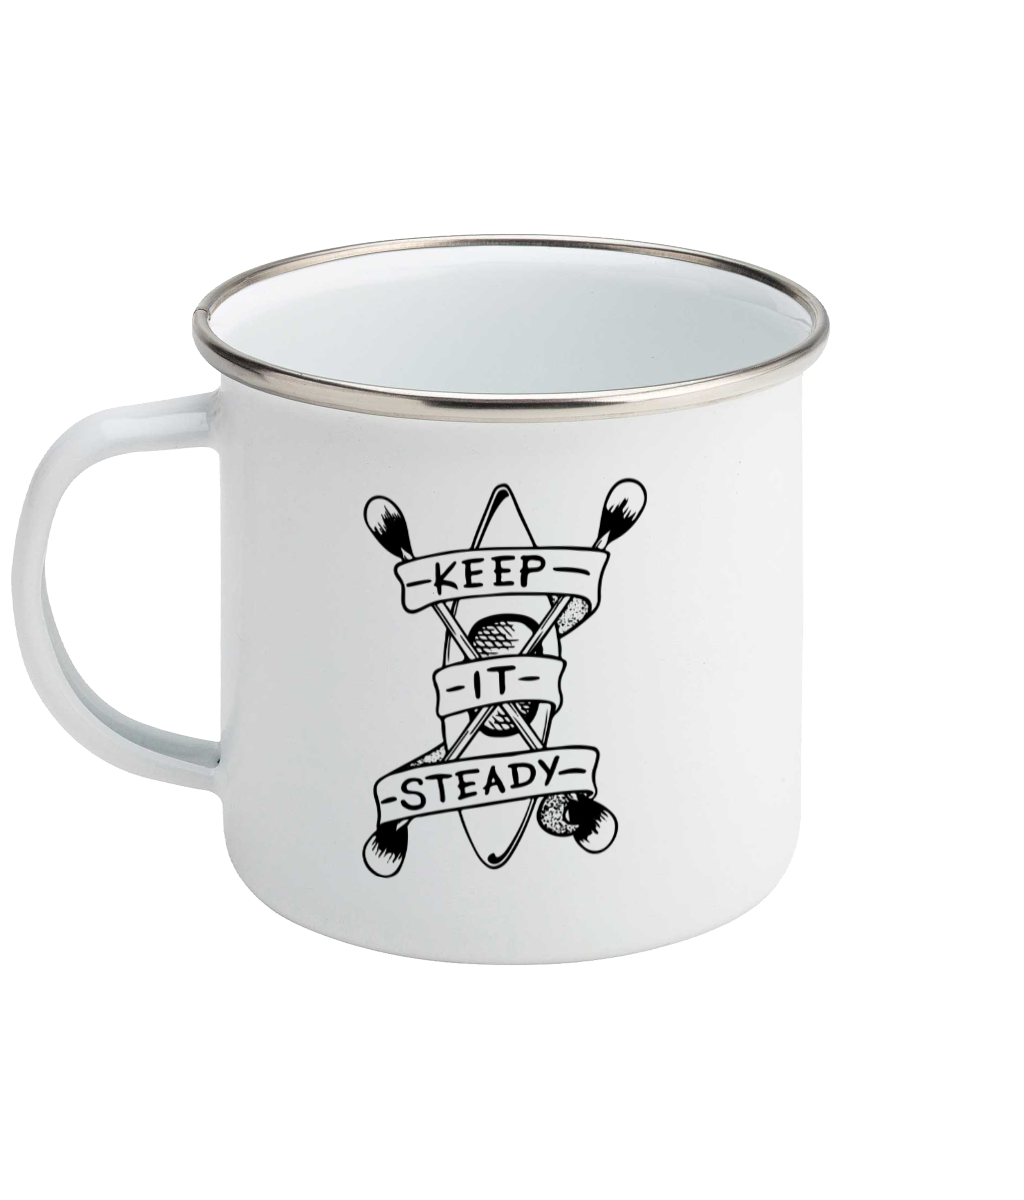 Keep It Steady - Enamel Mug, Suggested Products, Pen and Ink Studios Adventure Clothing